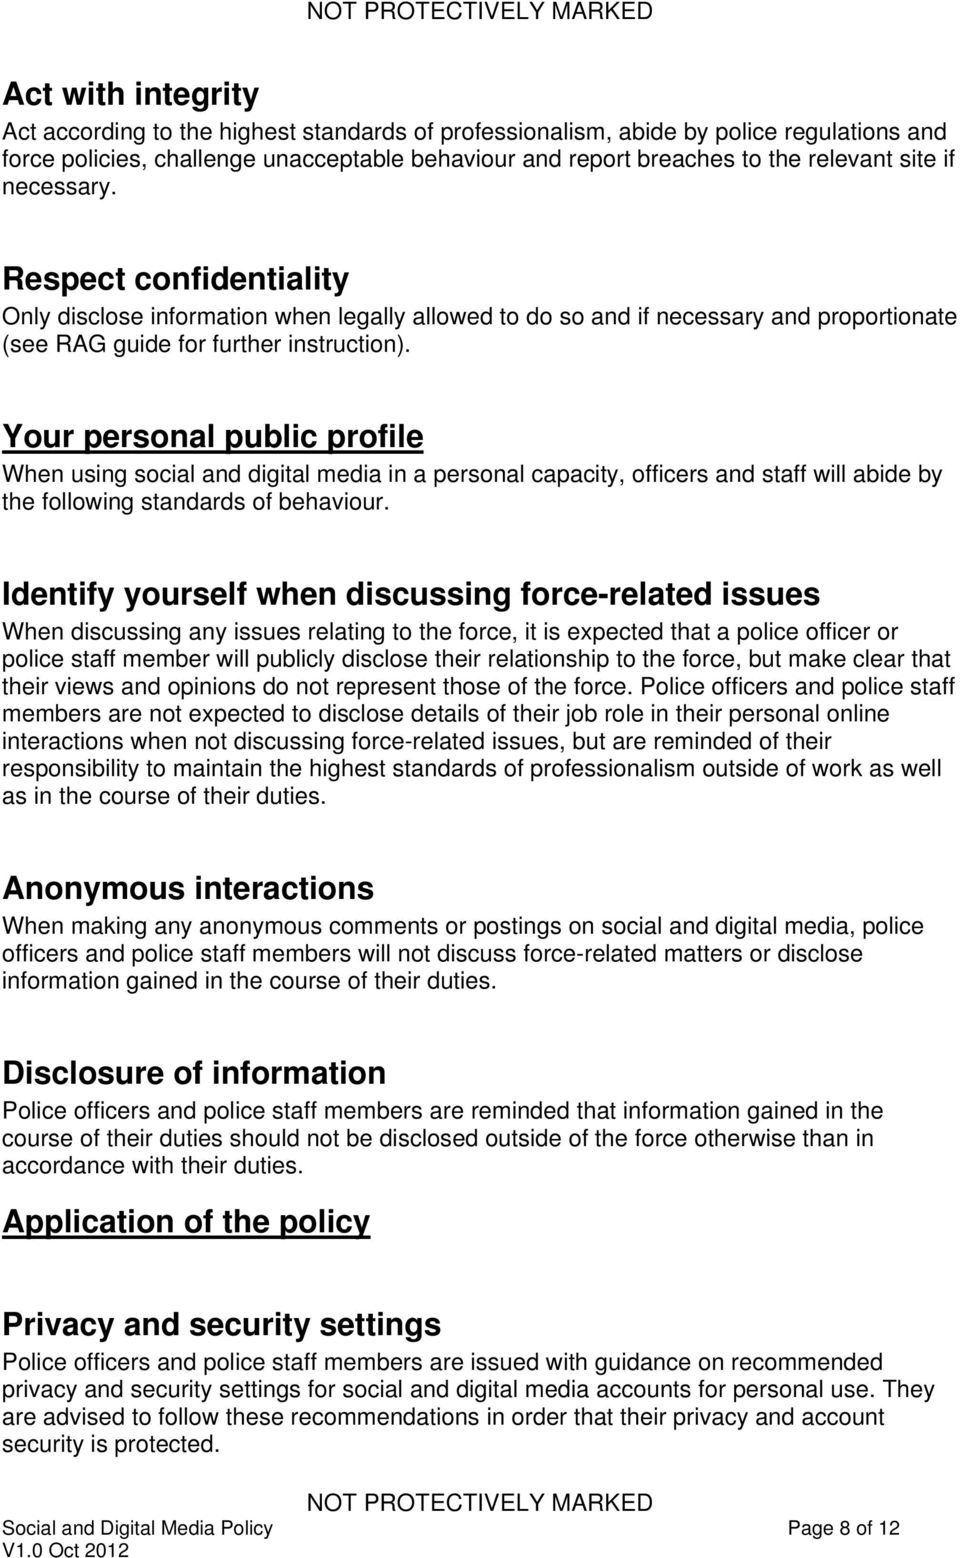 Your personal public profile When using social and digital media in a personal capacity, officers and staff will abide by the following standards of behaviour.